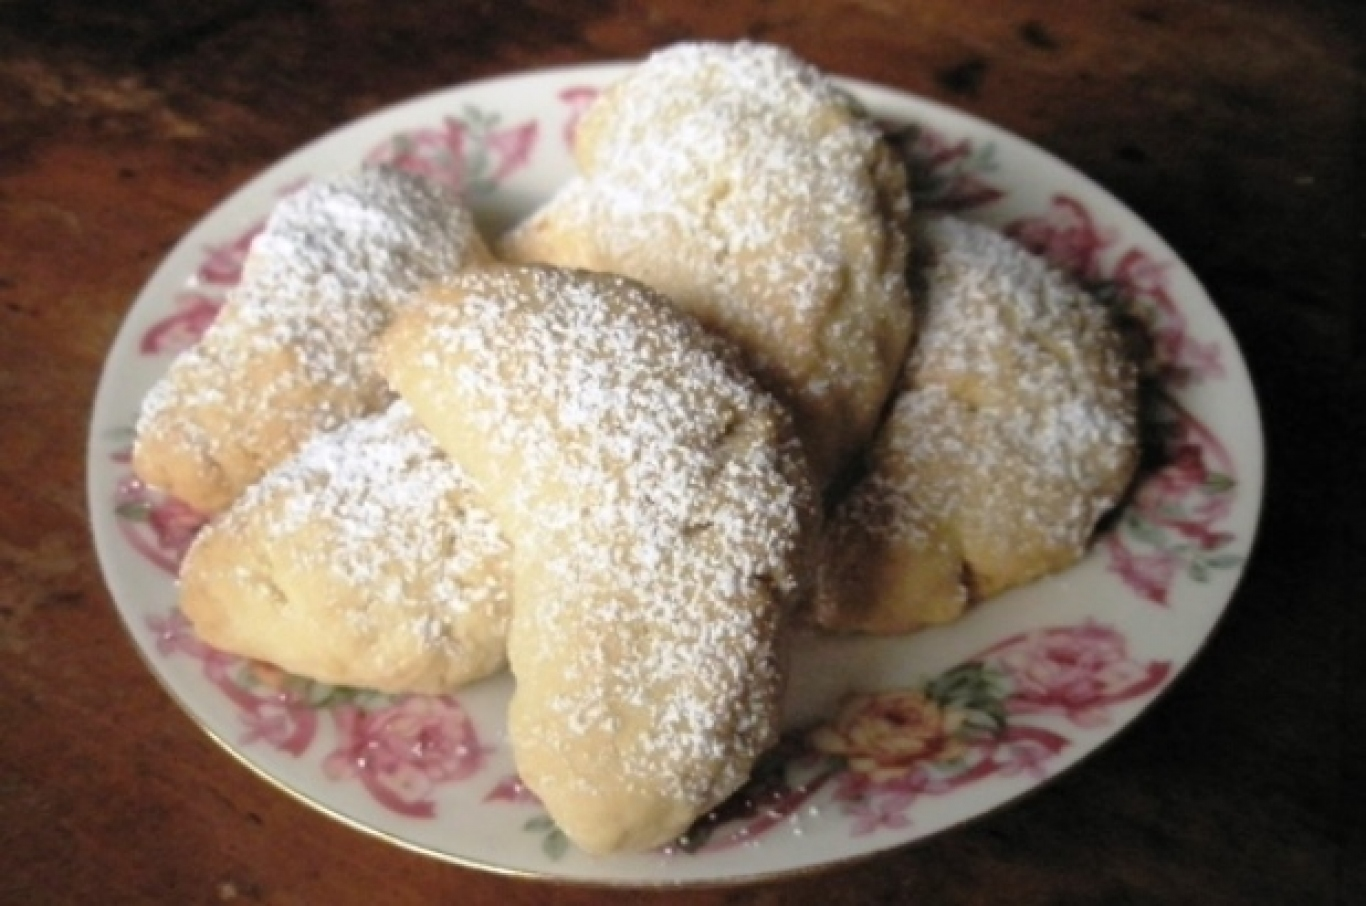 Plate of biscuits with icing sugar dusted on top.